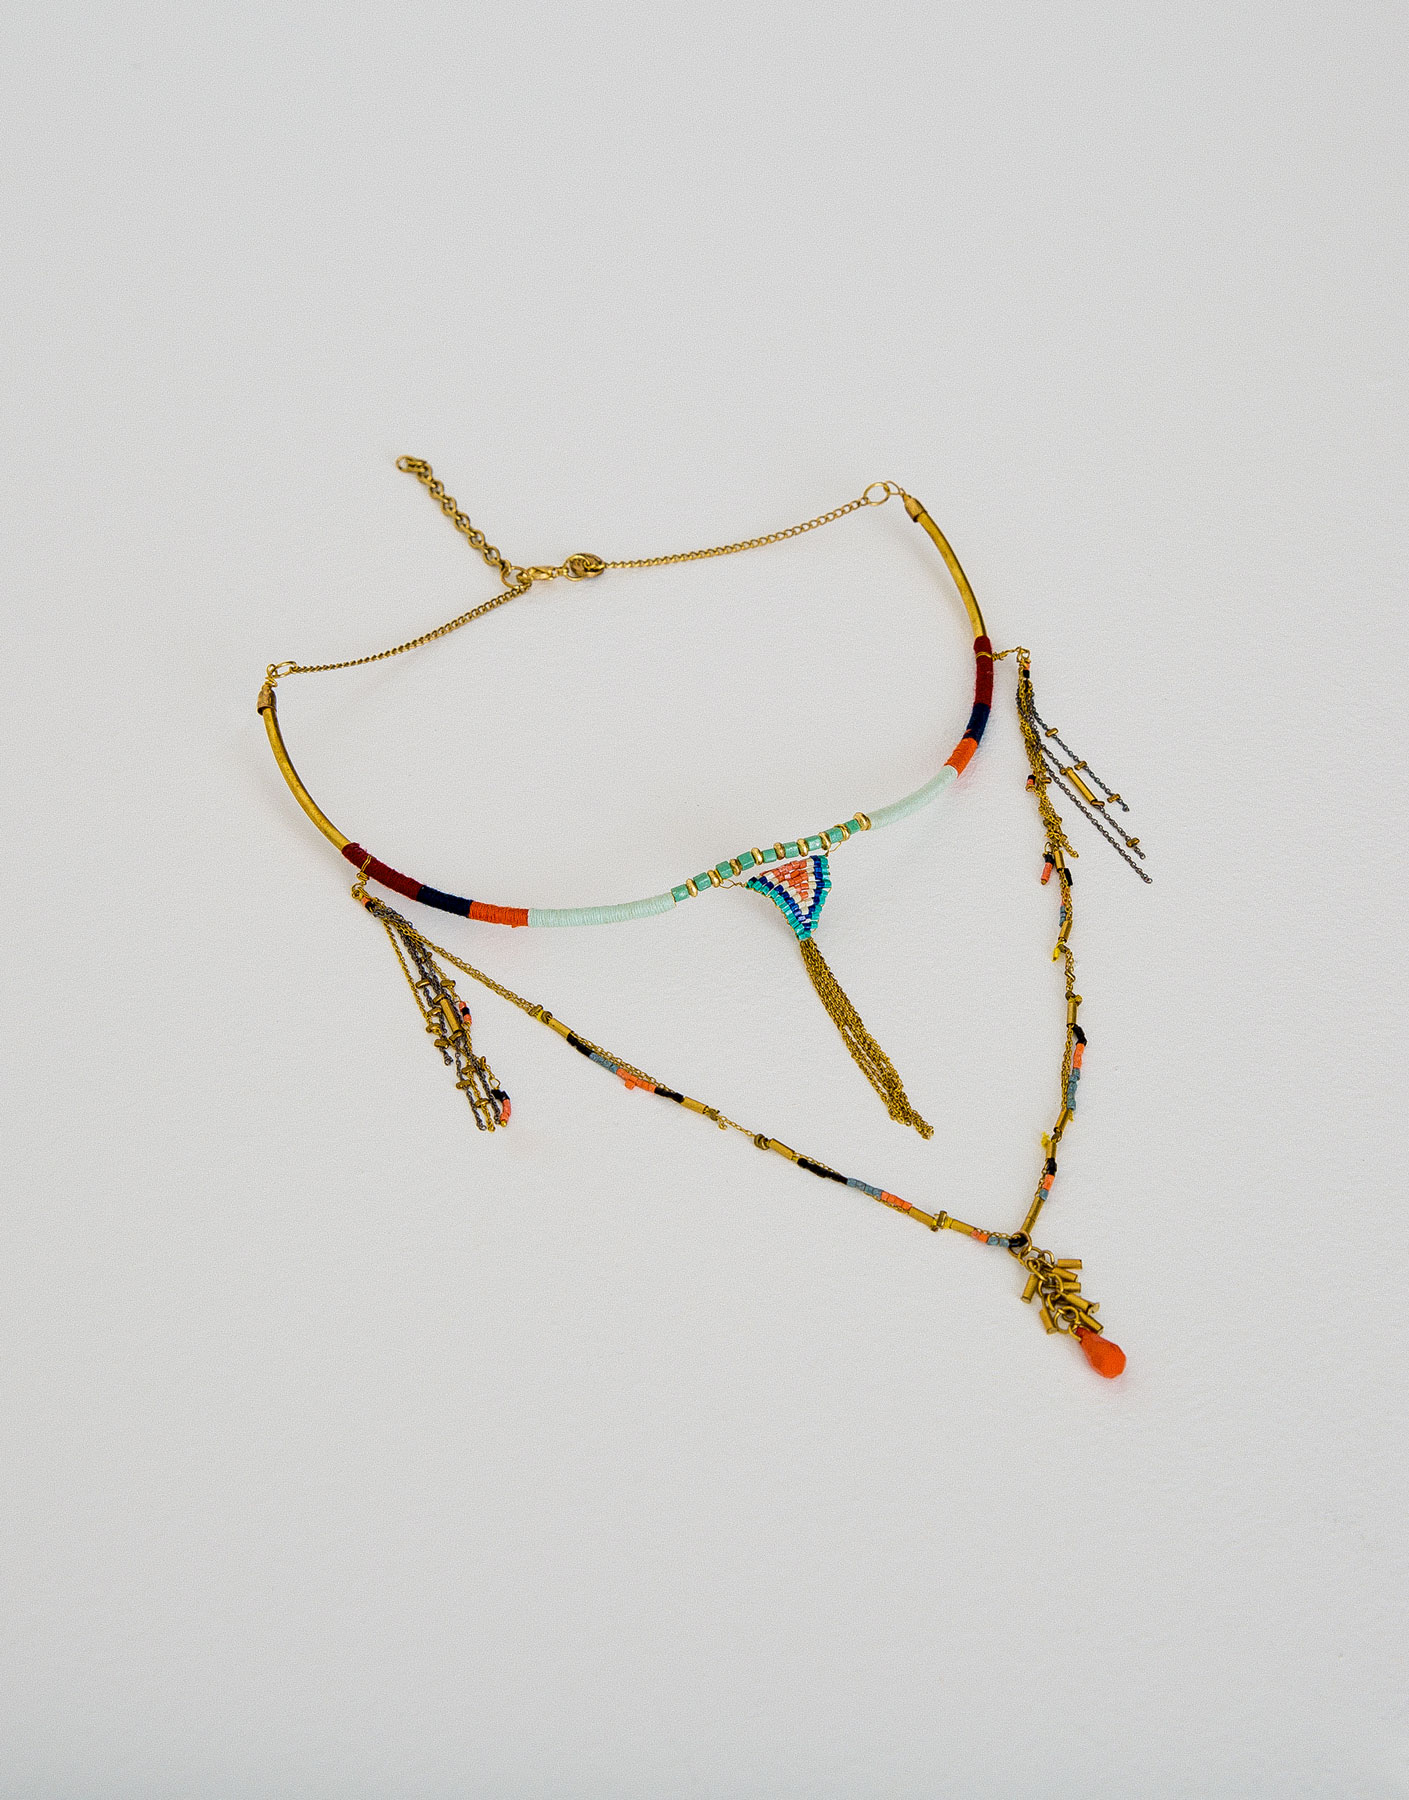 Beaded chain and thread necklace